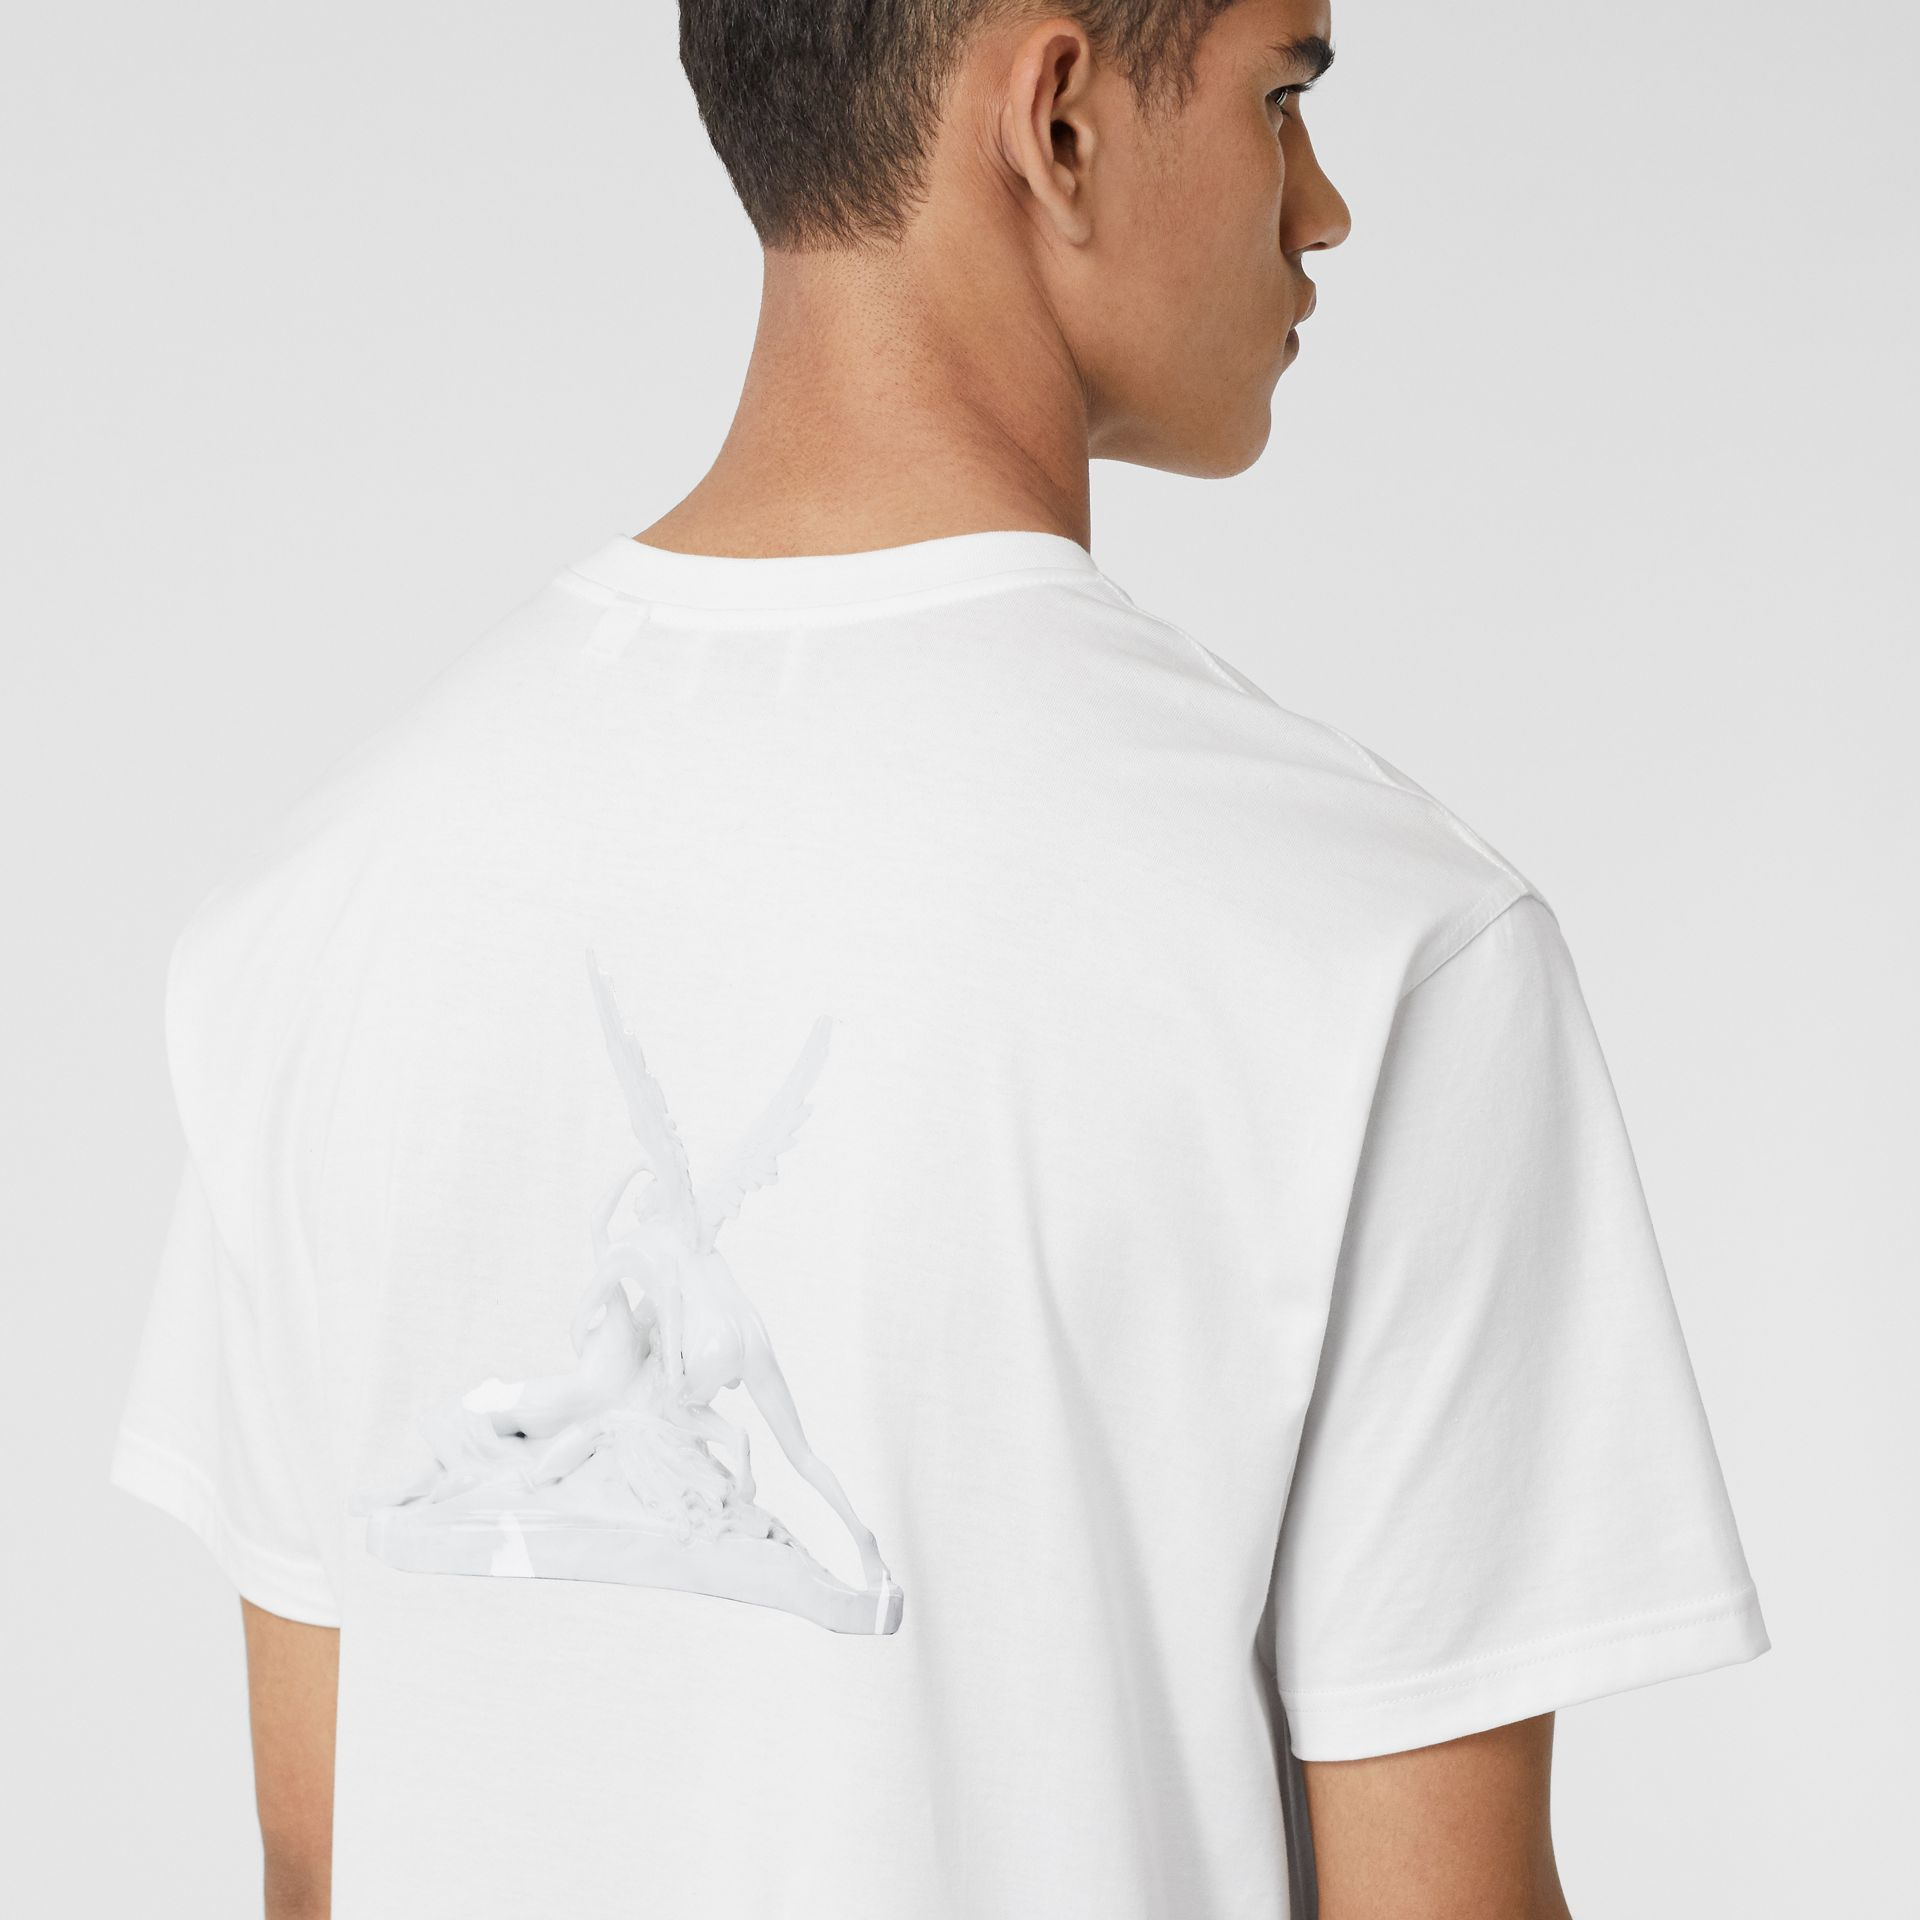 Cupid Print Cotton Oversized T-shirt in White - Men | Burberry - gallery image 4